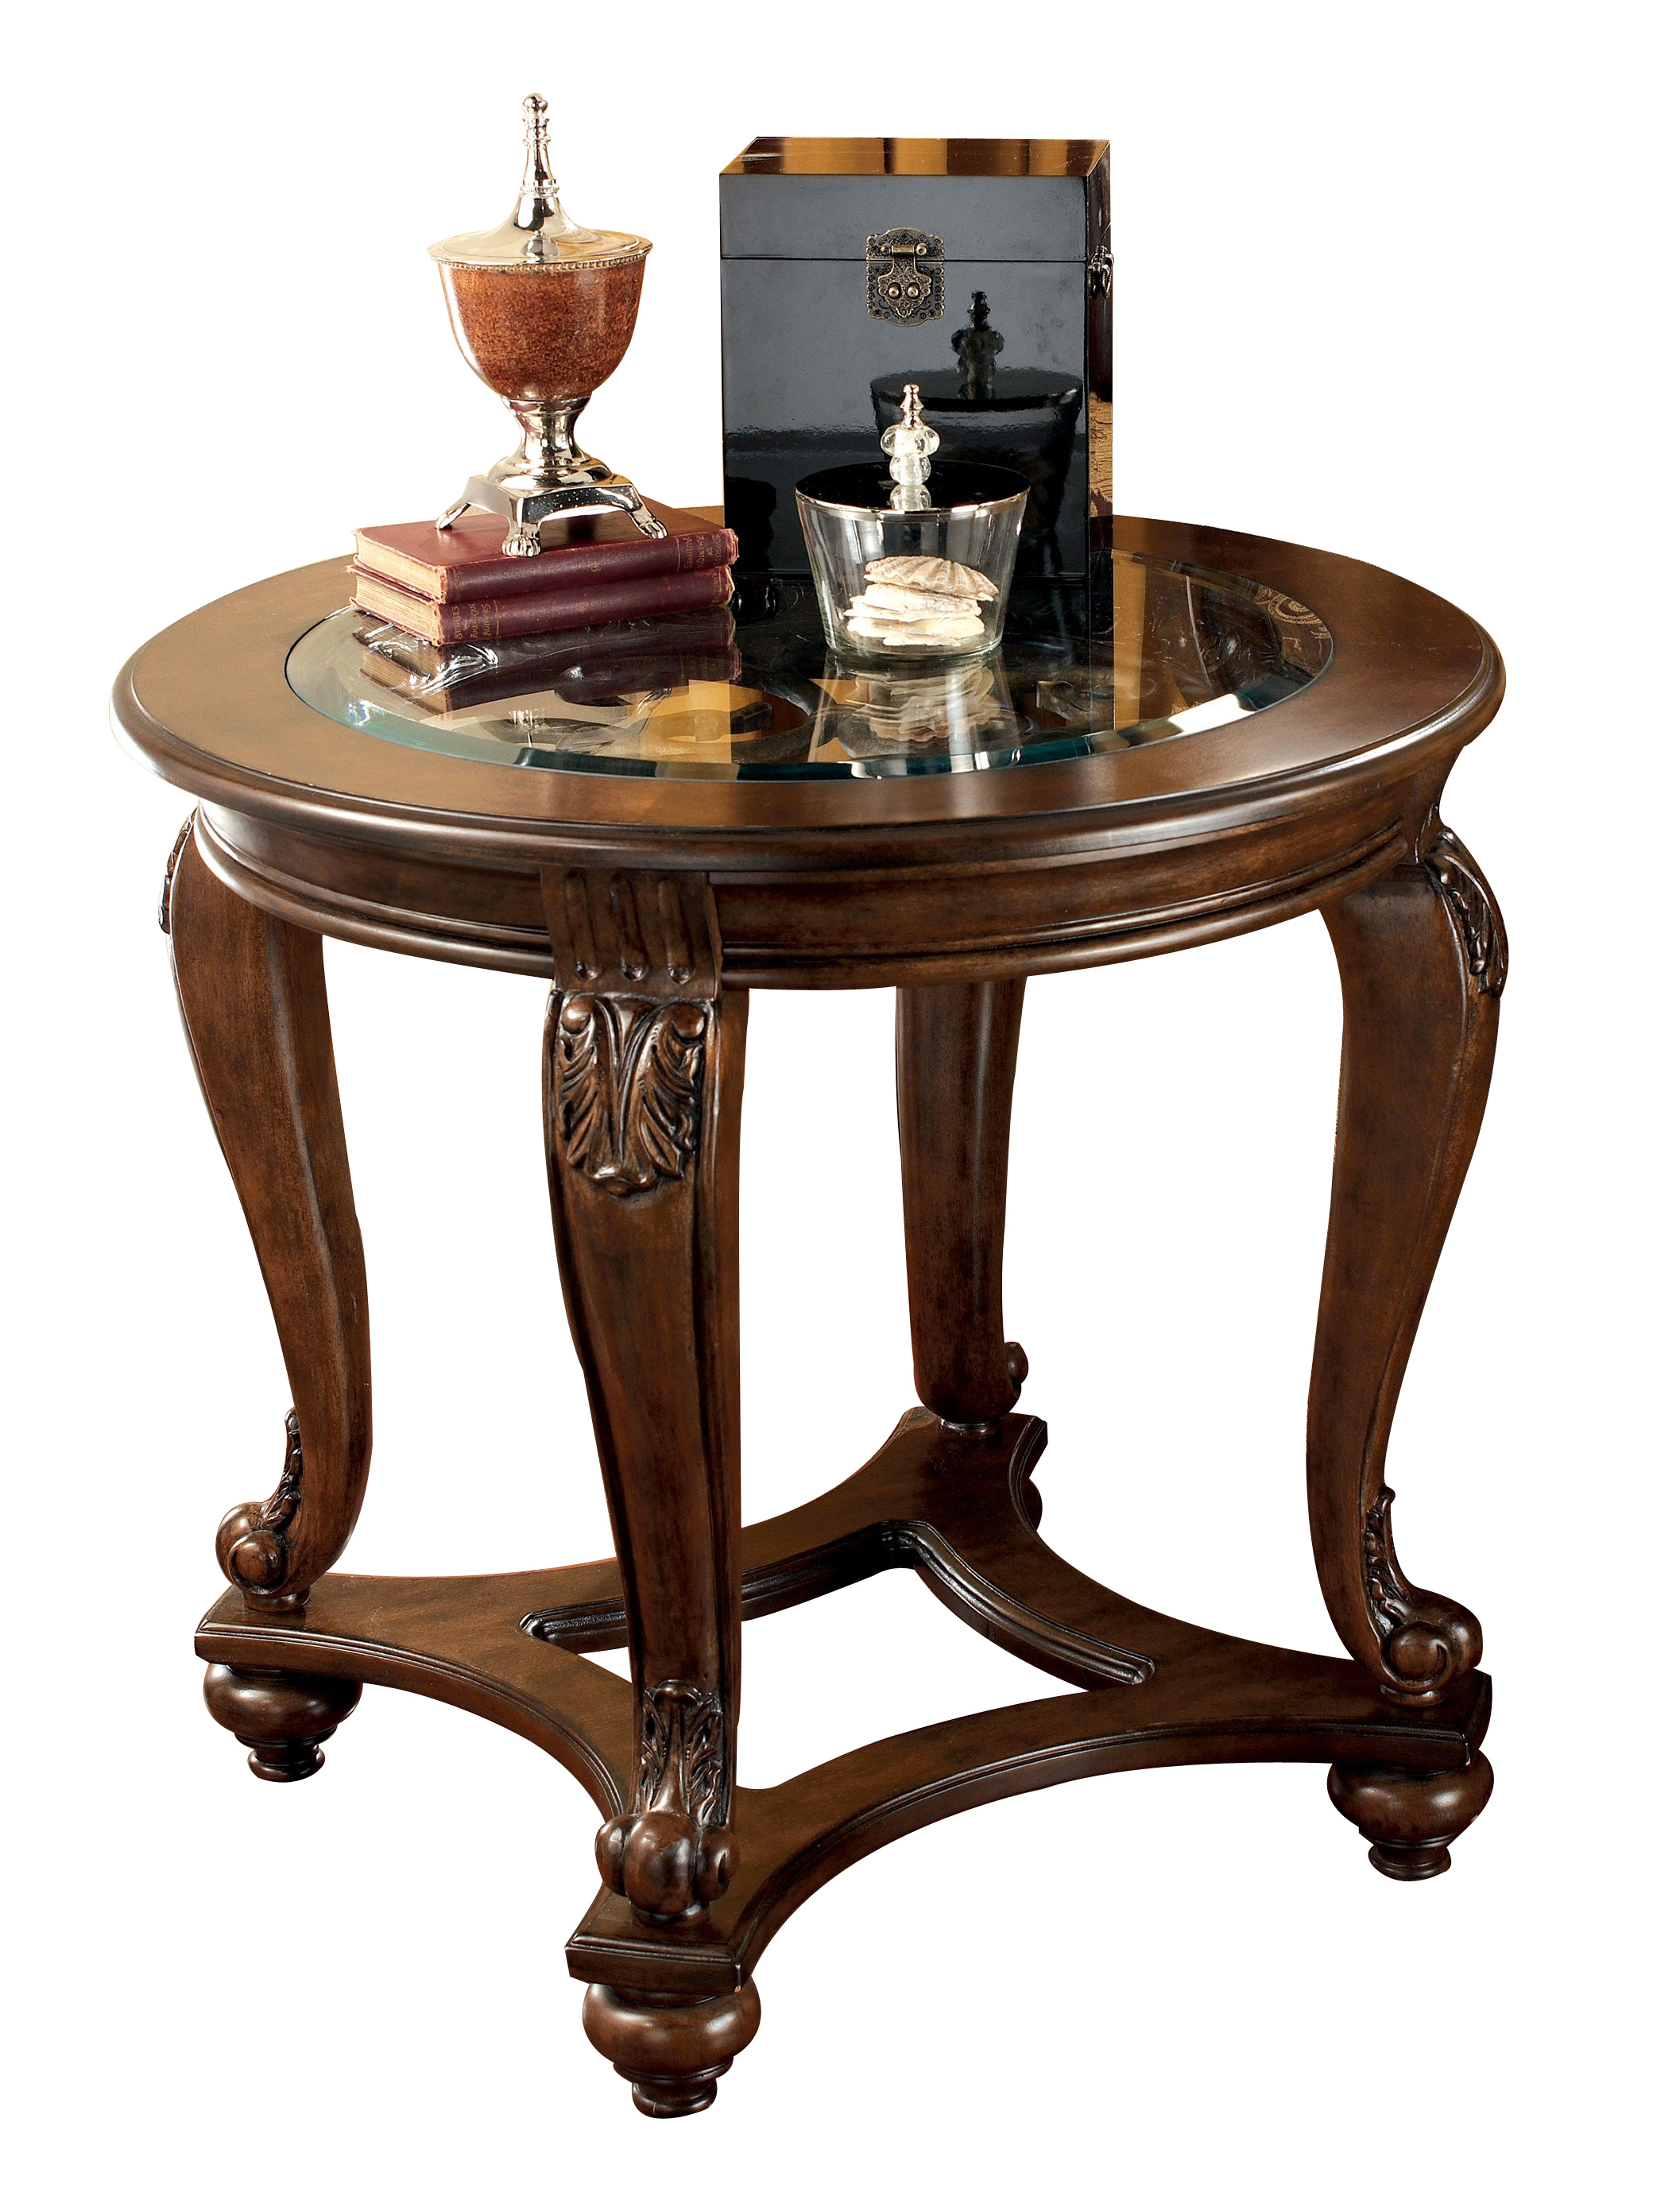 ashley furniture norcastle end table the classy home wbg tables and coffee click enlarge round chairside antique pedestal styles folding small white plastic patio leather covered